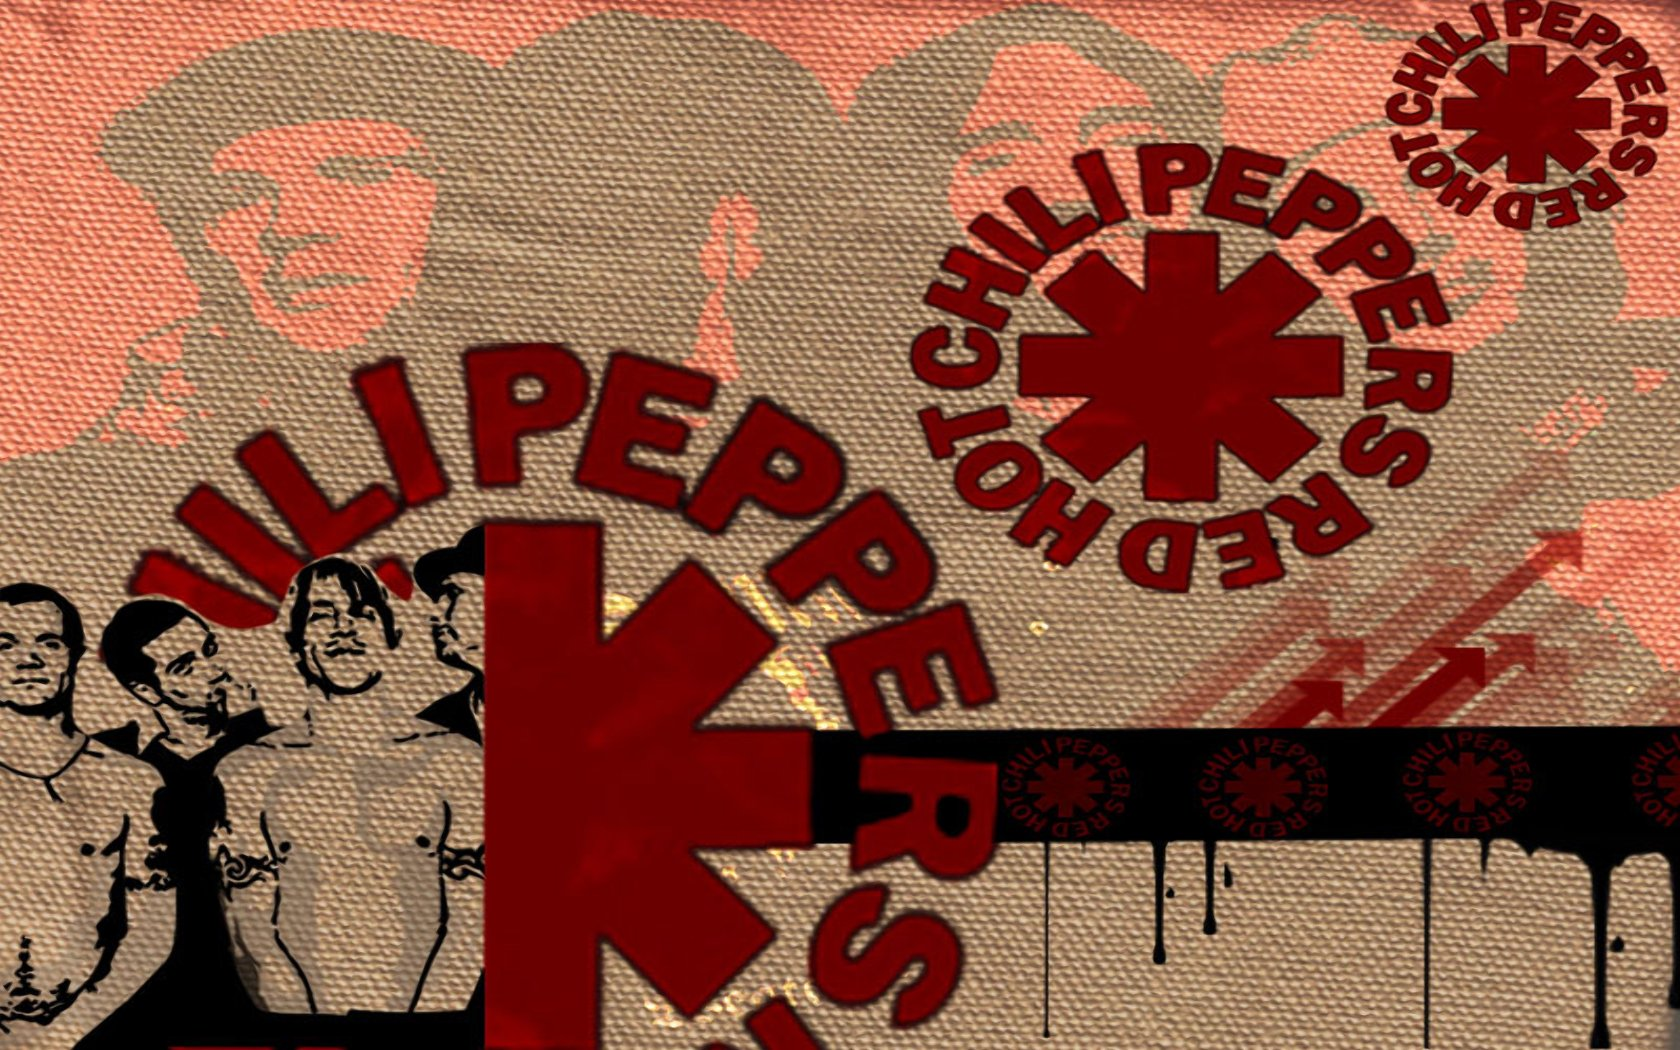 Red Hot Chili Peppers Hd Wallpapers Backgrounds Wallpaper 1680x1050